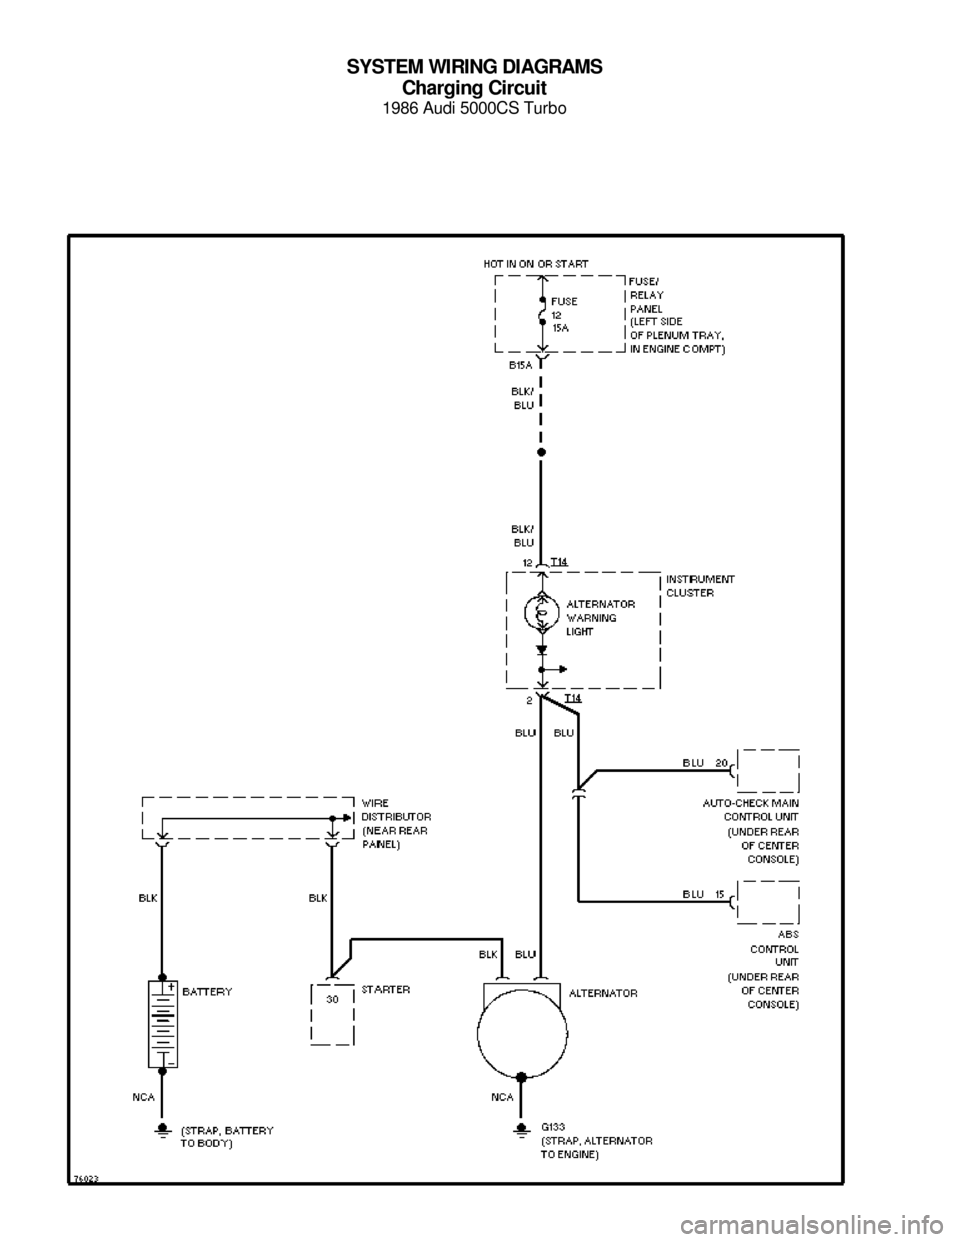 AUDI 5000CS 1986 C2 System Wiring Diagram SYSTEM WIRING DIAGRAMS Charging Circuit 1986 Audi 5000CS Turbo For x     Copyright © 1998 Mitchell Repair Information Company, LLCMonday, July 19, 2004  05:53PM